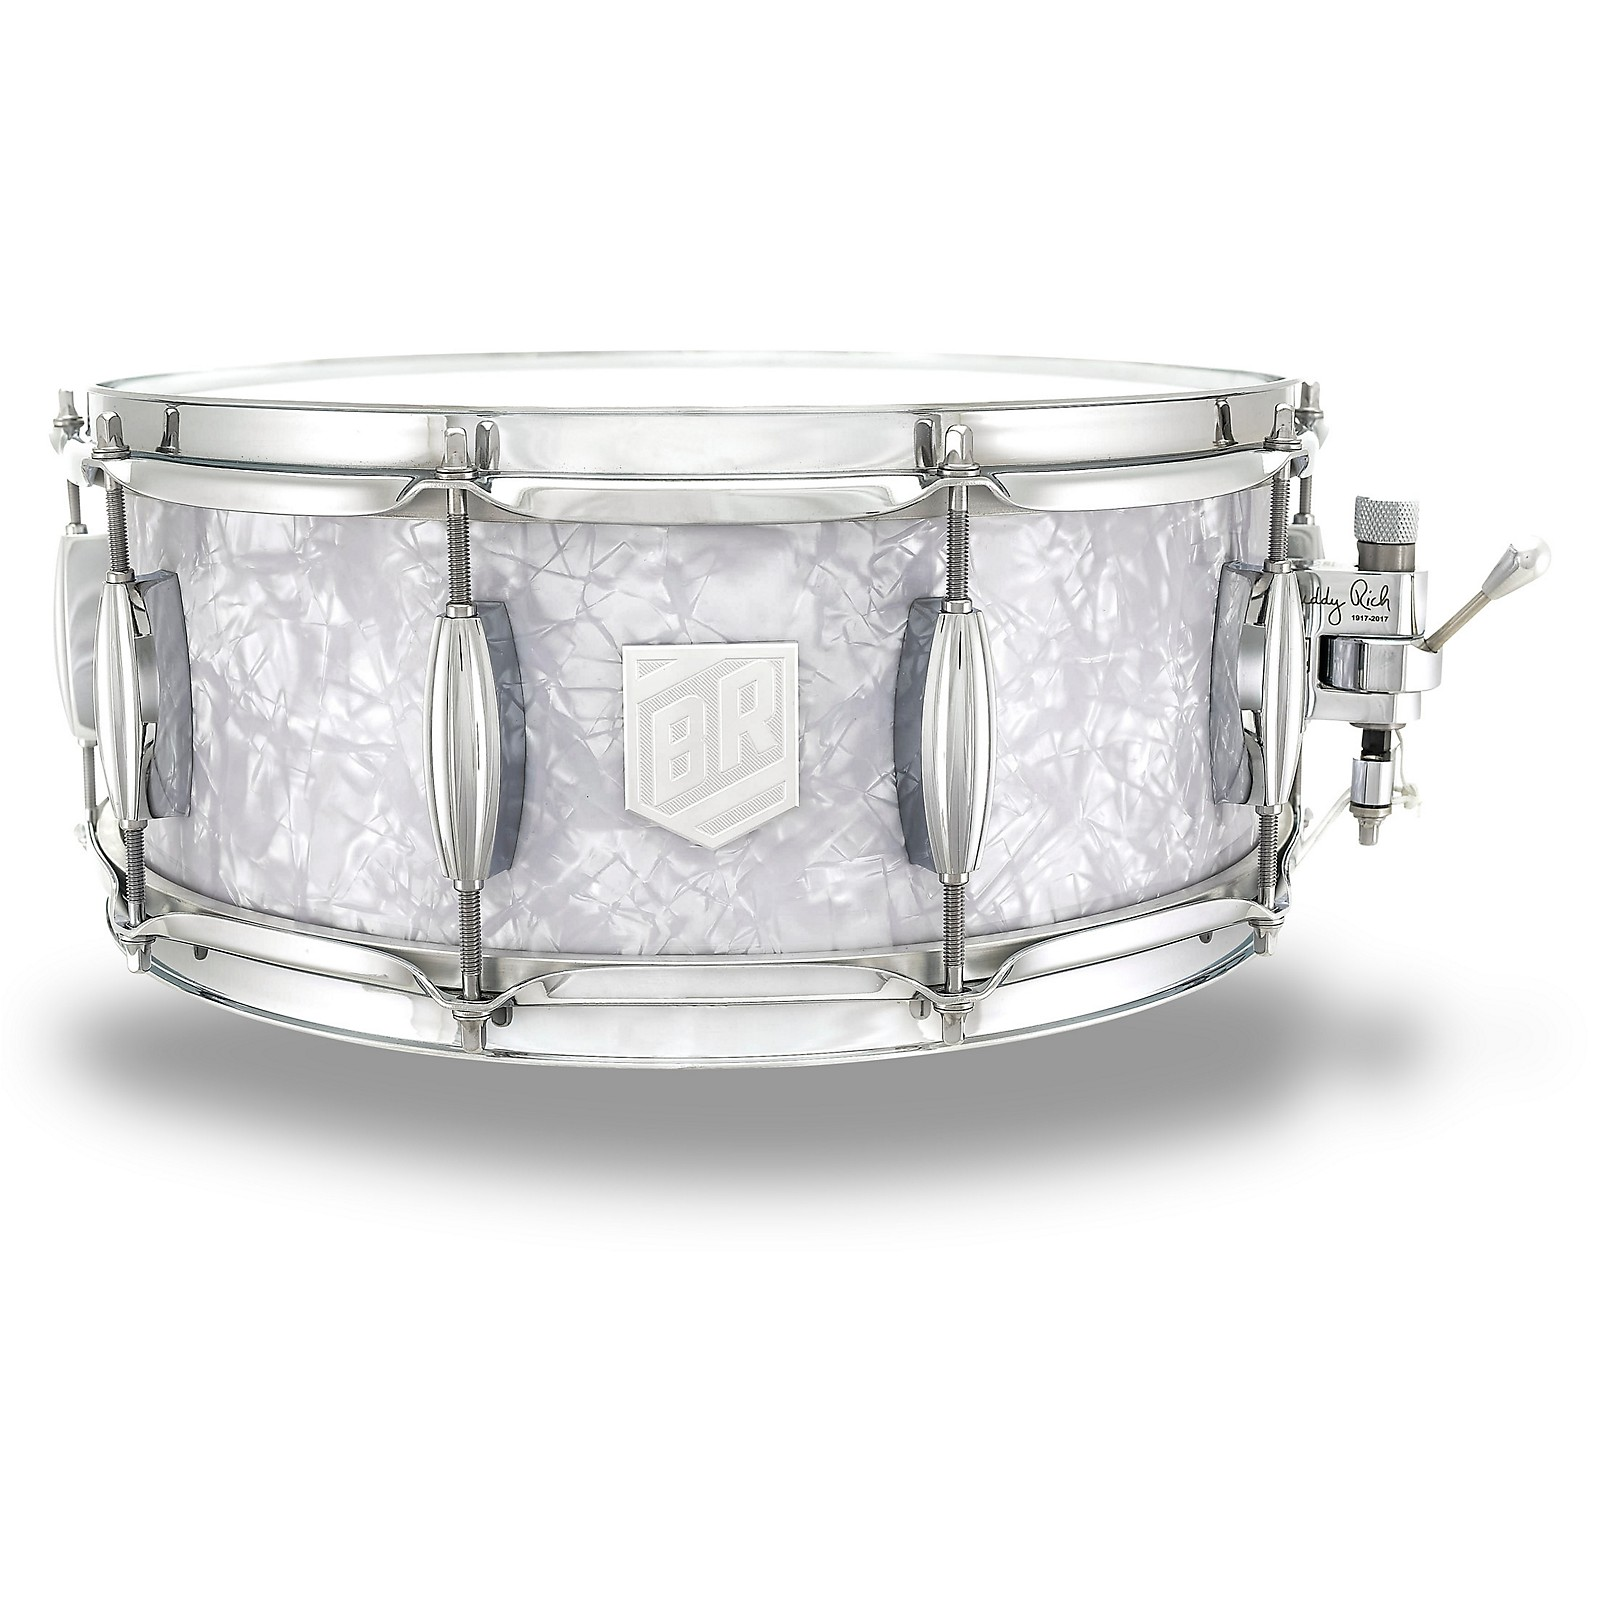 Trick Drums Buddy Rich 100th Anniversary Snare Drum